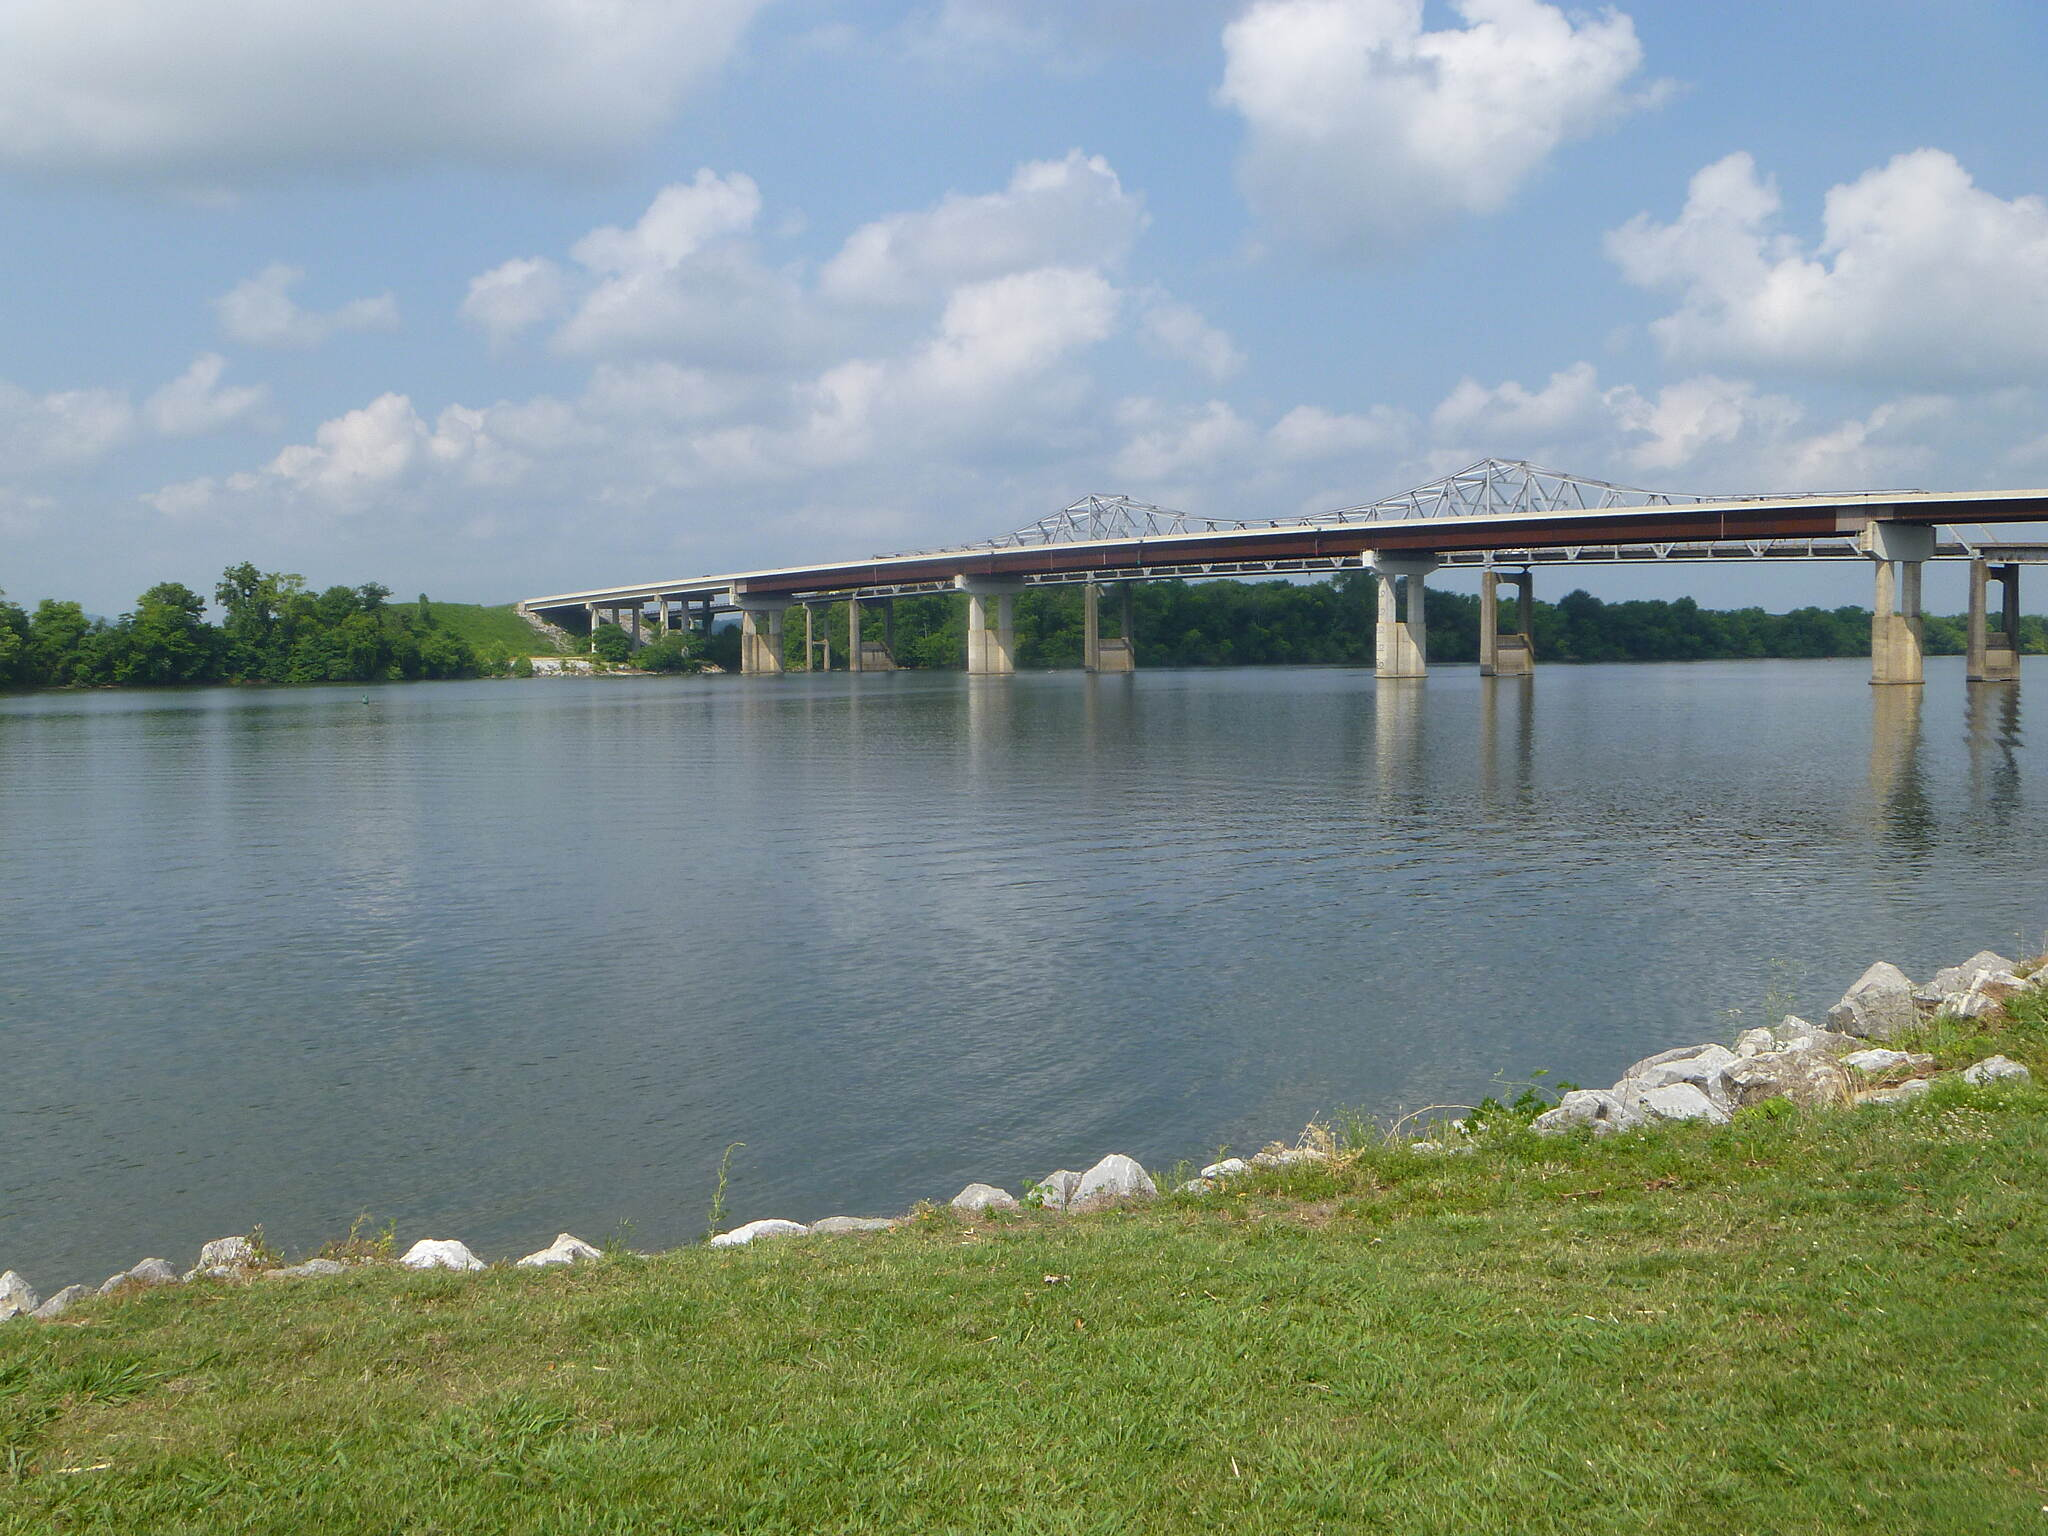 Aldridge Creek Greenway Tennessee River@Ditto Landing